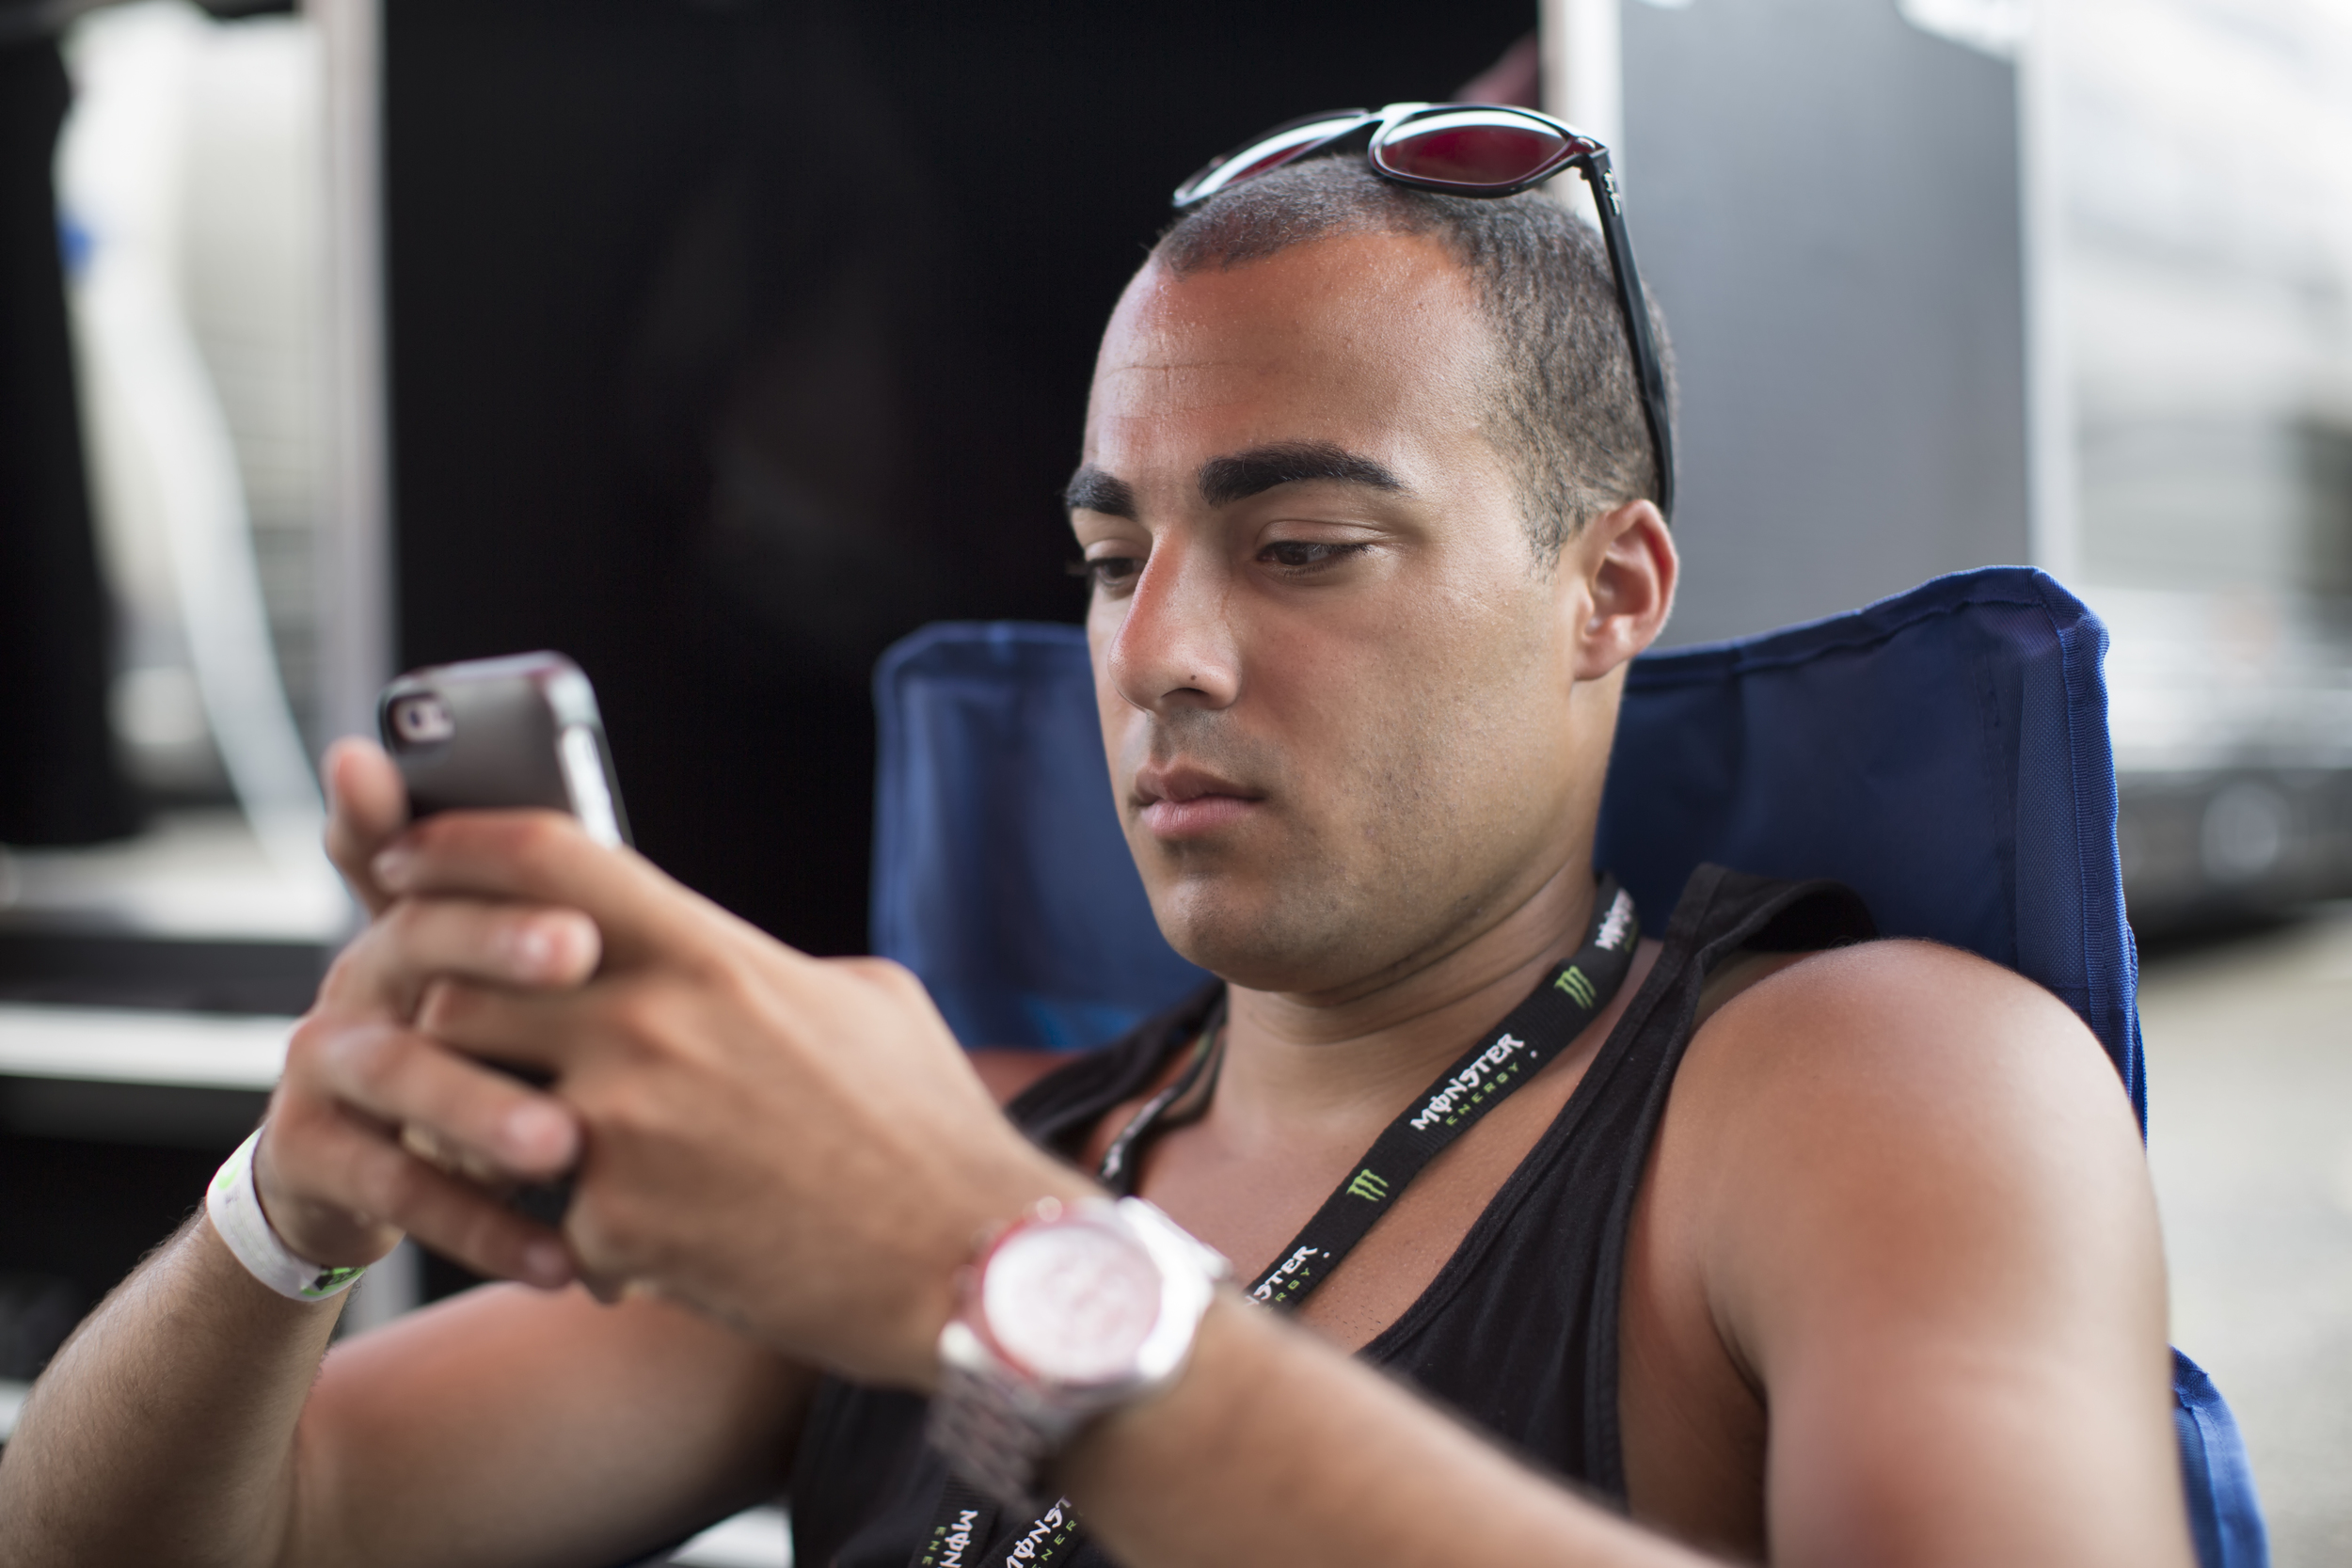 How I spent 90% of my down time. Texting my wife and checking instagram. haha